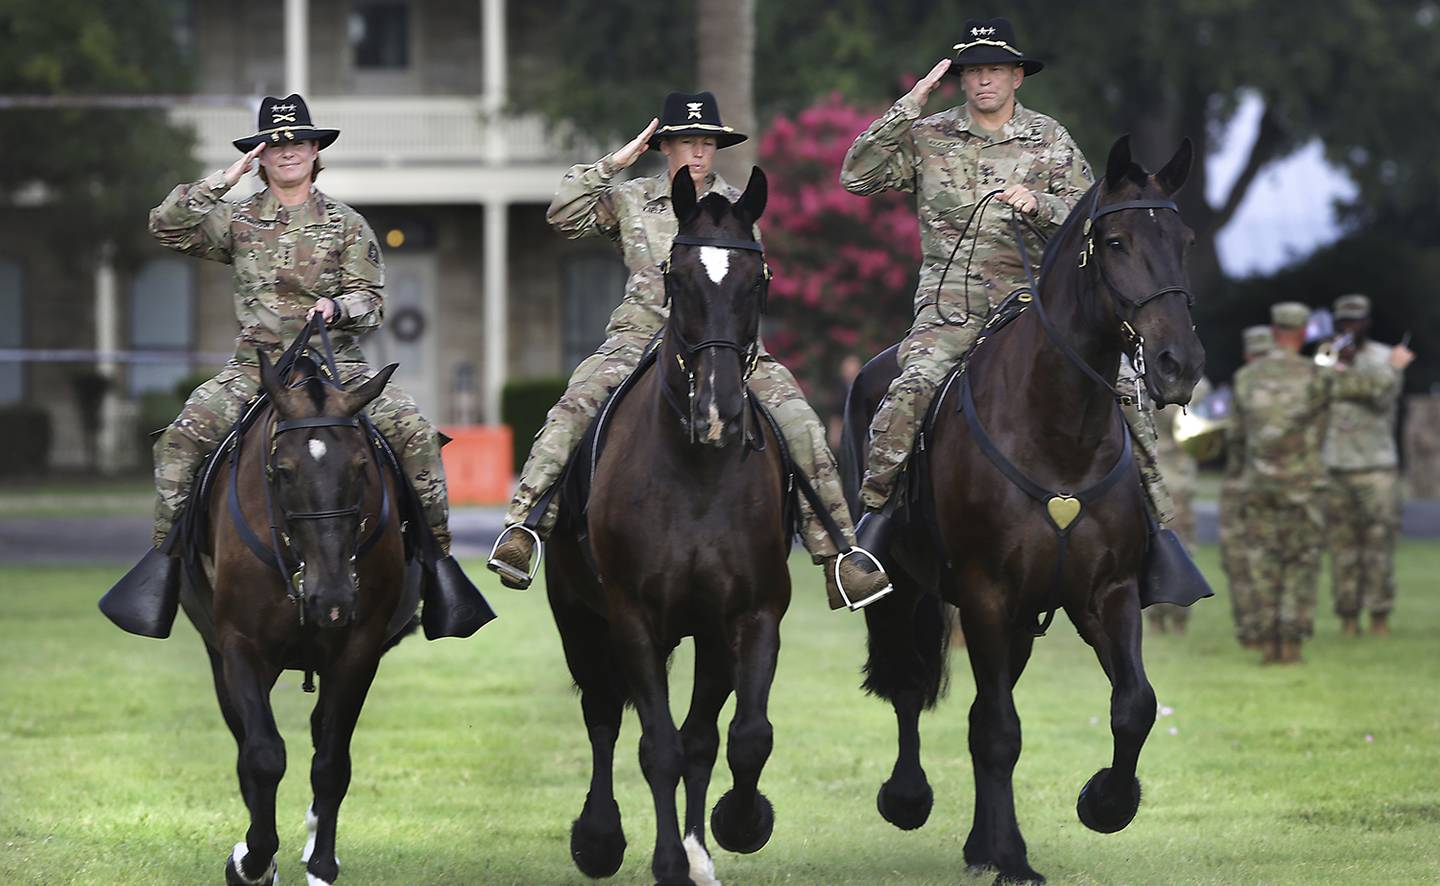 Lt. Gen. Jeffrey Buchanan, right, outgoing commander of U.S. Army North, and Lt. Gen Laura Richardson, left, incoming commander, ride with Col. Niave Knell, U.S. Army North chief of staff, to review the troops during the change of command at Fort Sam Houston on July 8, 2019.